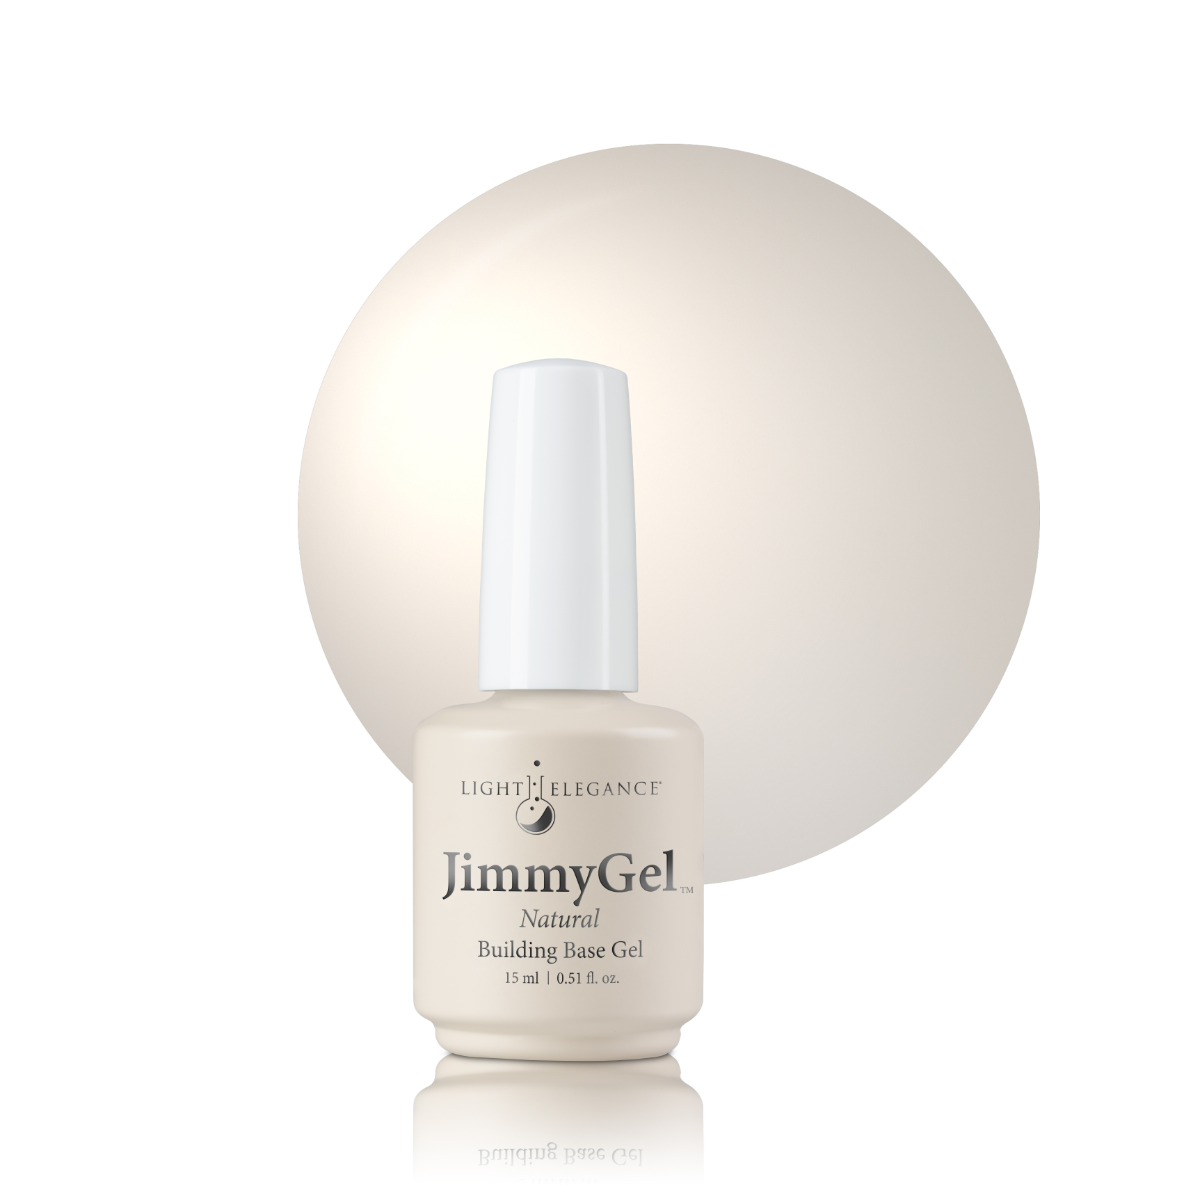 NATURAL JIMMYGEL SOAK-OFF BUILDING BASE